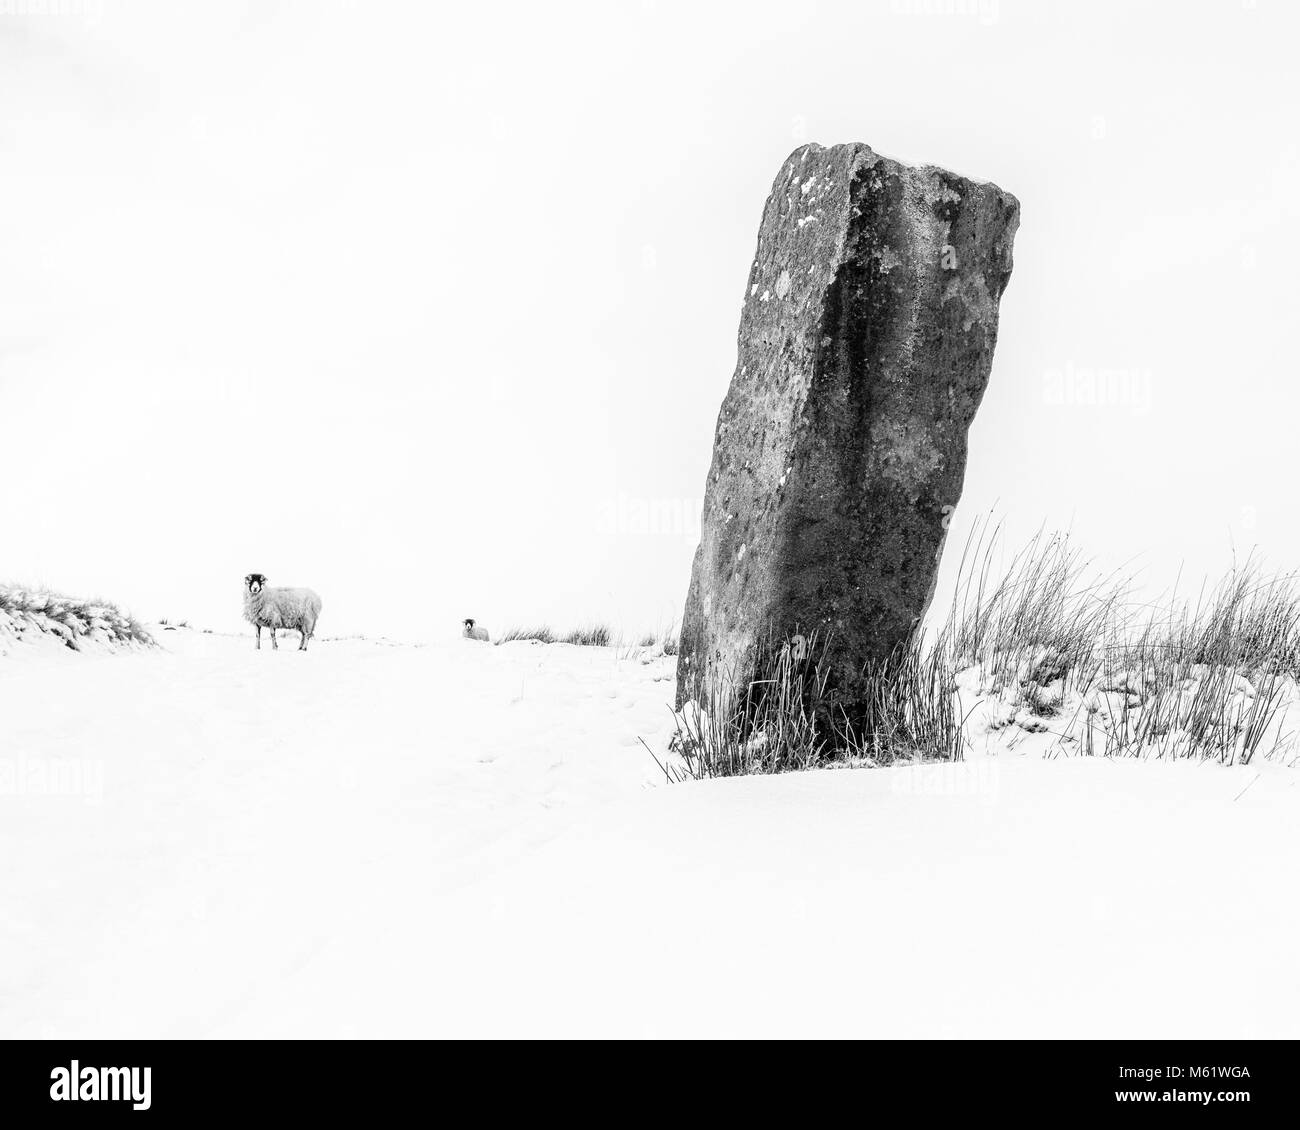 Minimalist monochrome image of a snowy winter scene on the moors with sheep and a gritstone monolith - Stock Image